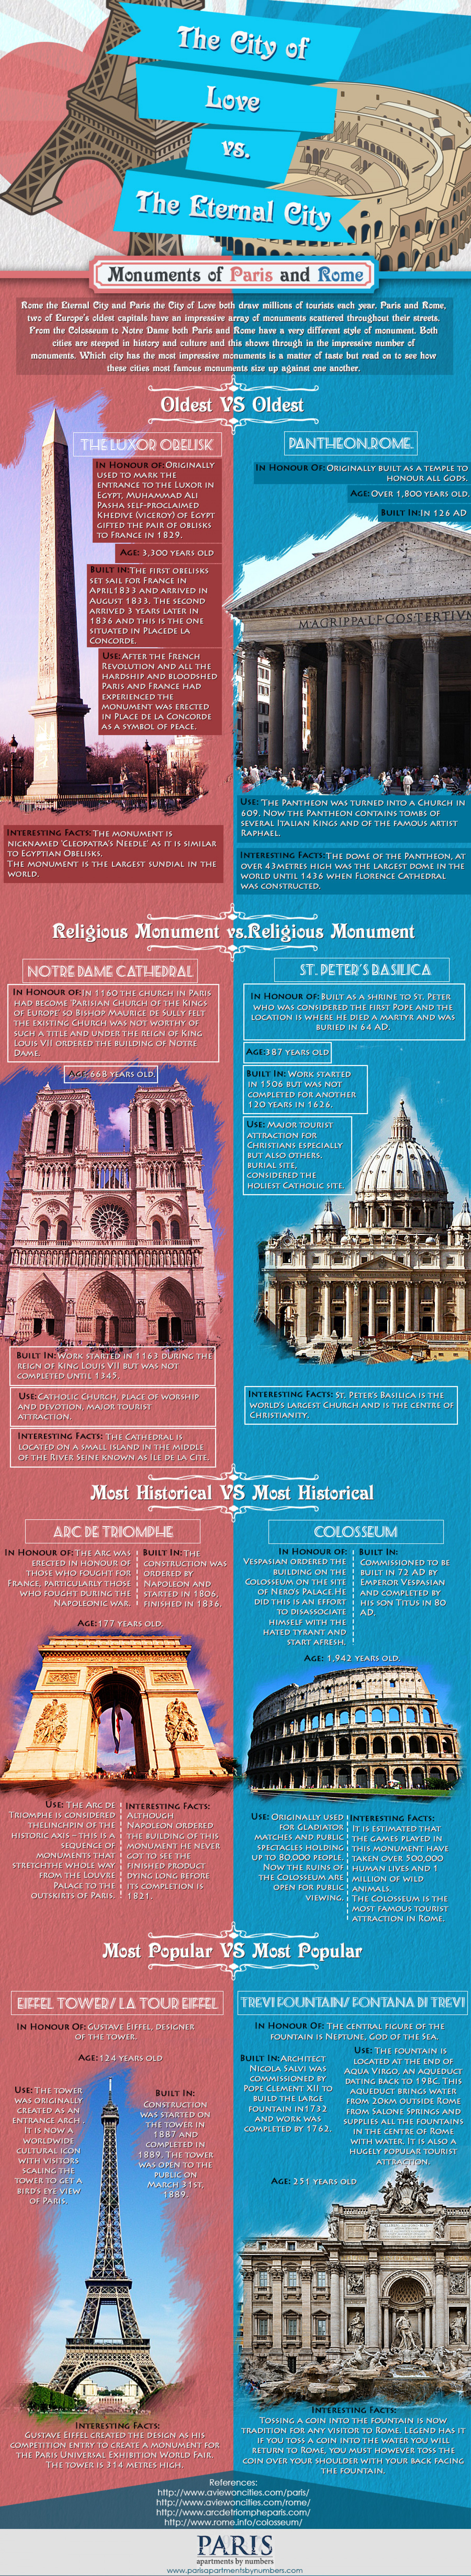 The city of Love vs The eternal city Infographic